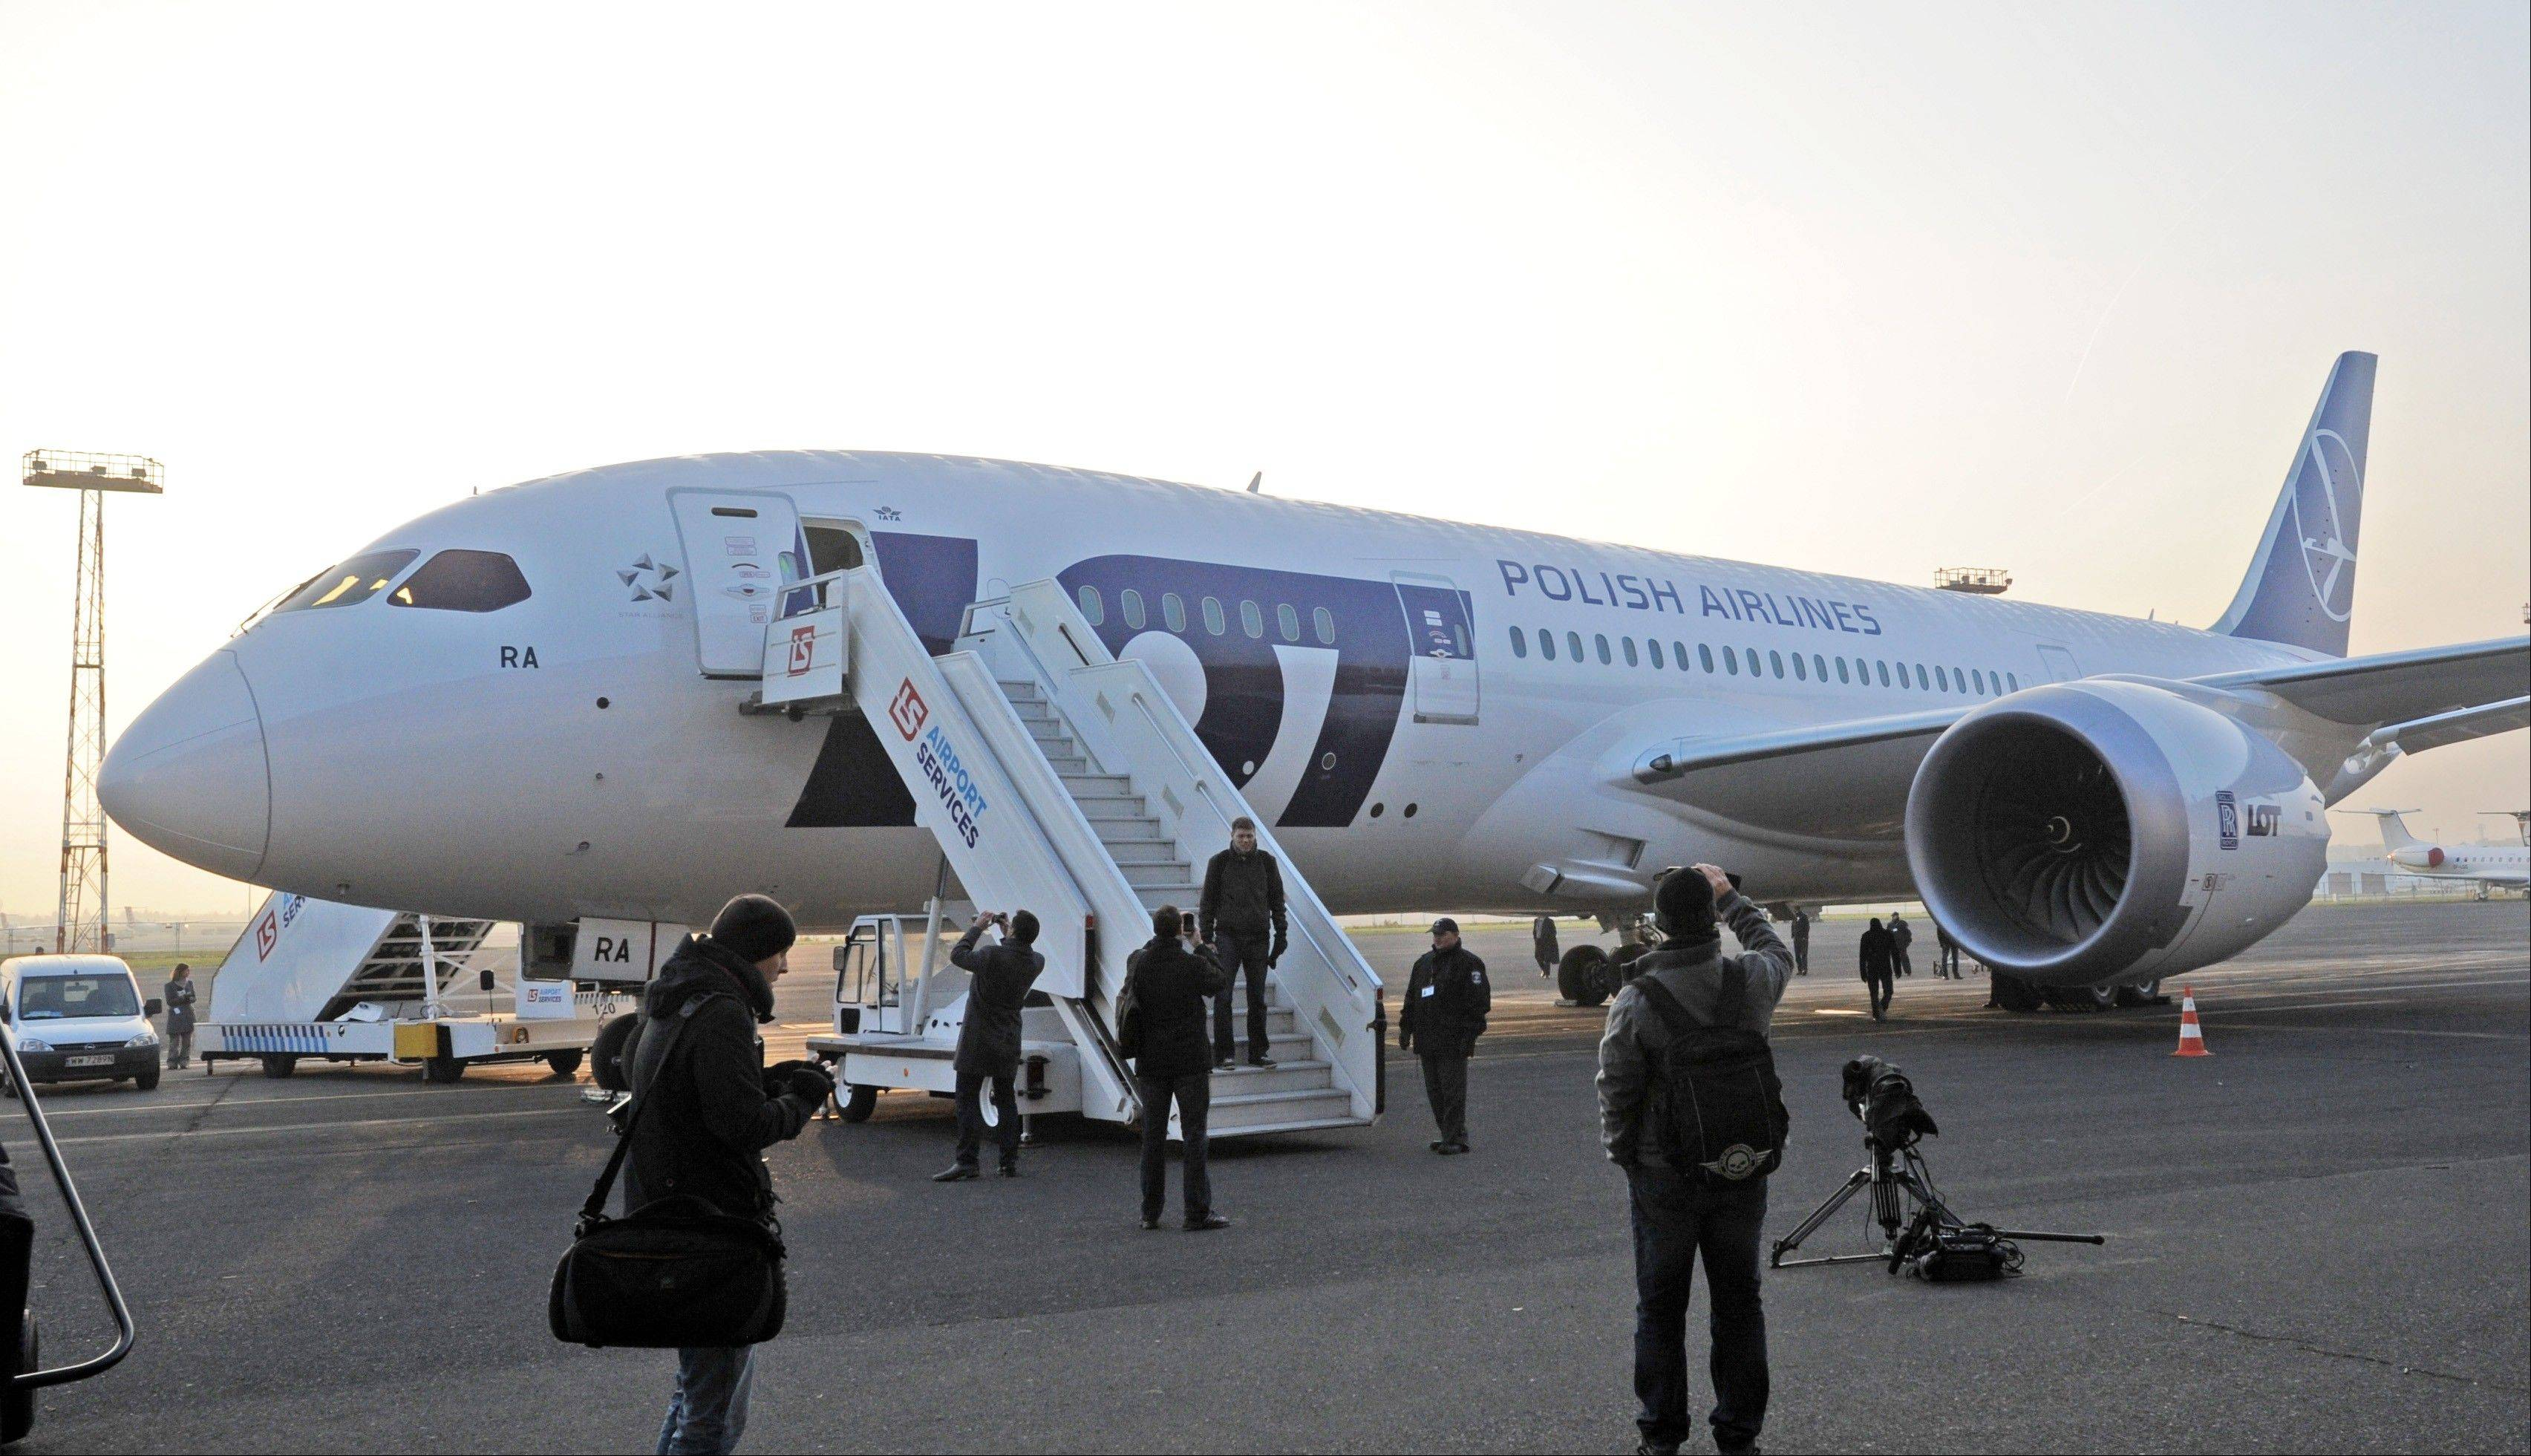 Poland's LOT airline said Wednesday its grounded Boeing 787 planes will resume flying on Saturday, four days earlier than planned.